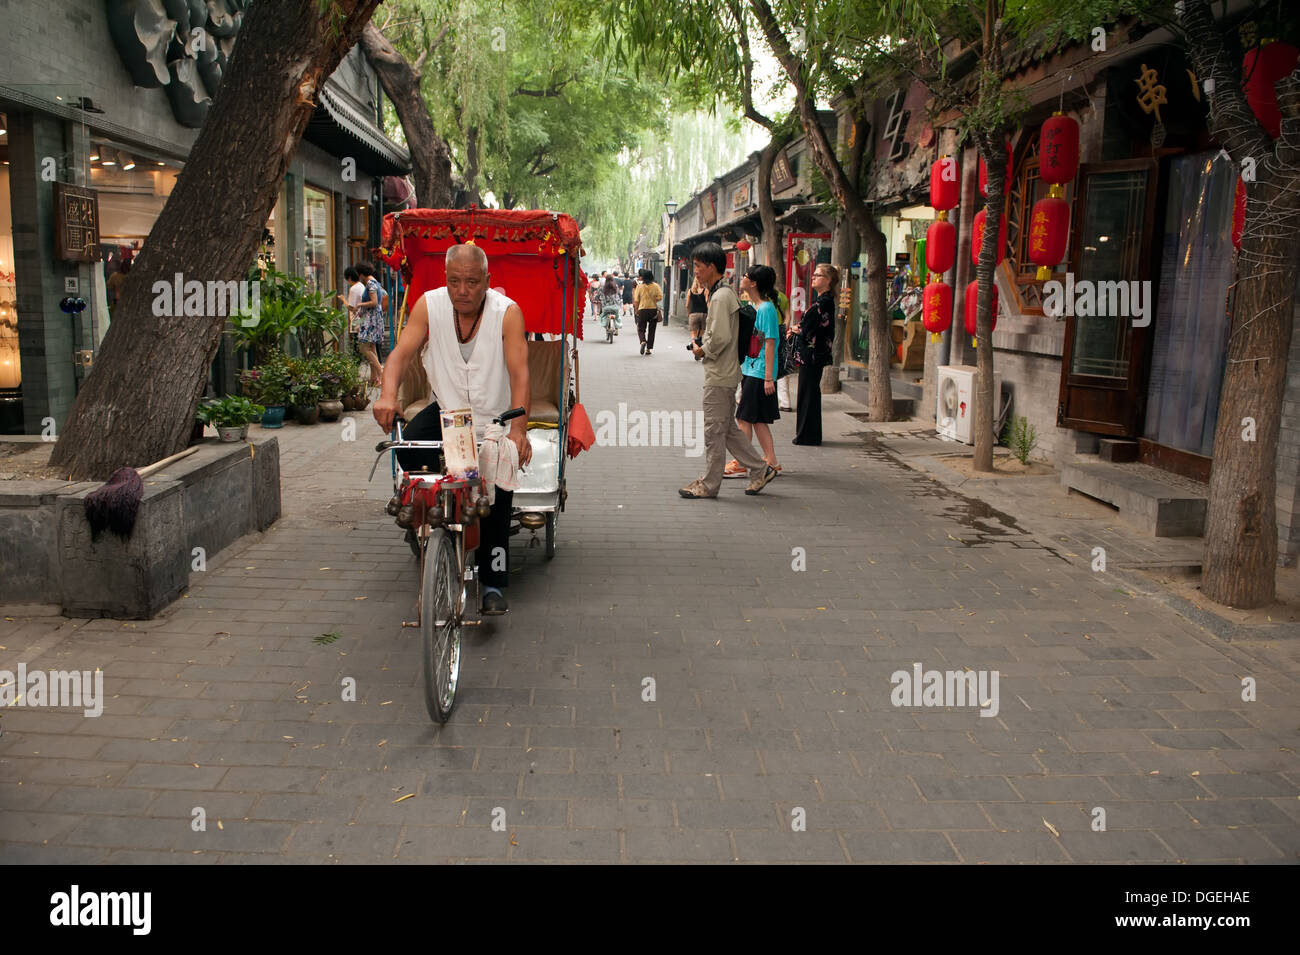 Traditional rickshaw on the main street in the Jing Yang Hutong of Beijing. The Hutongs provide a glimpse of life in Beijing. - Stock Image